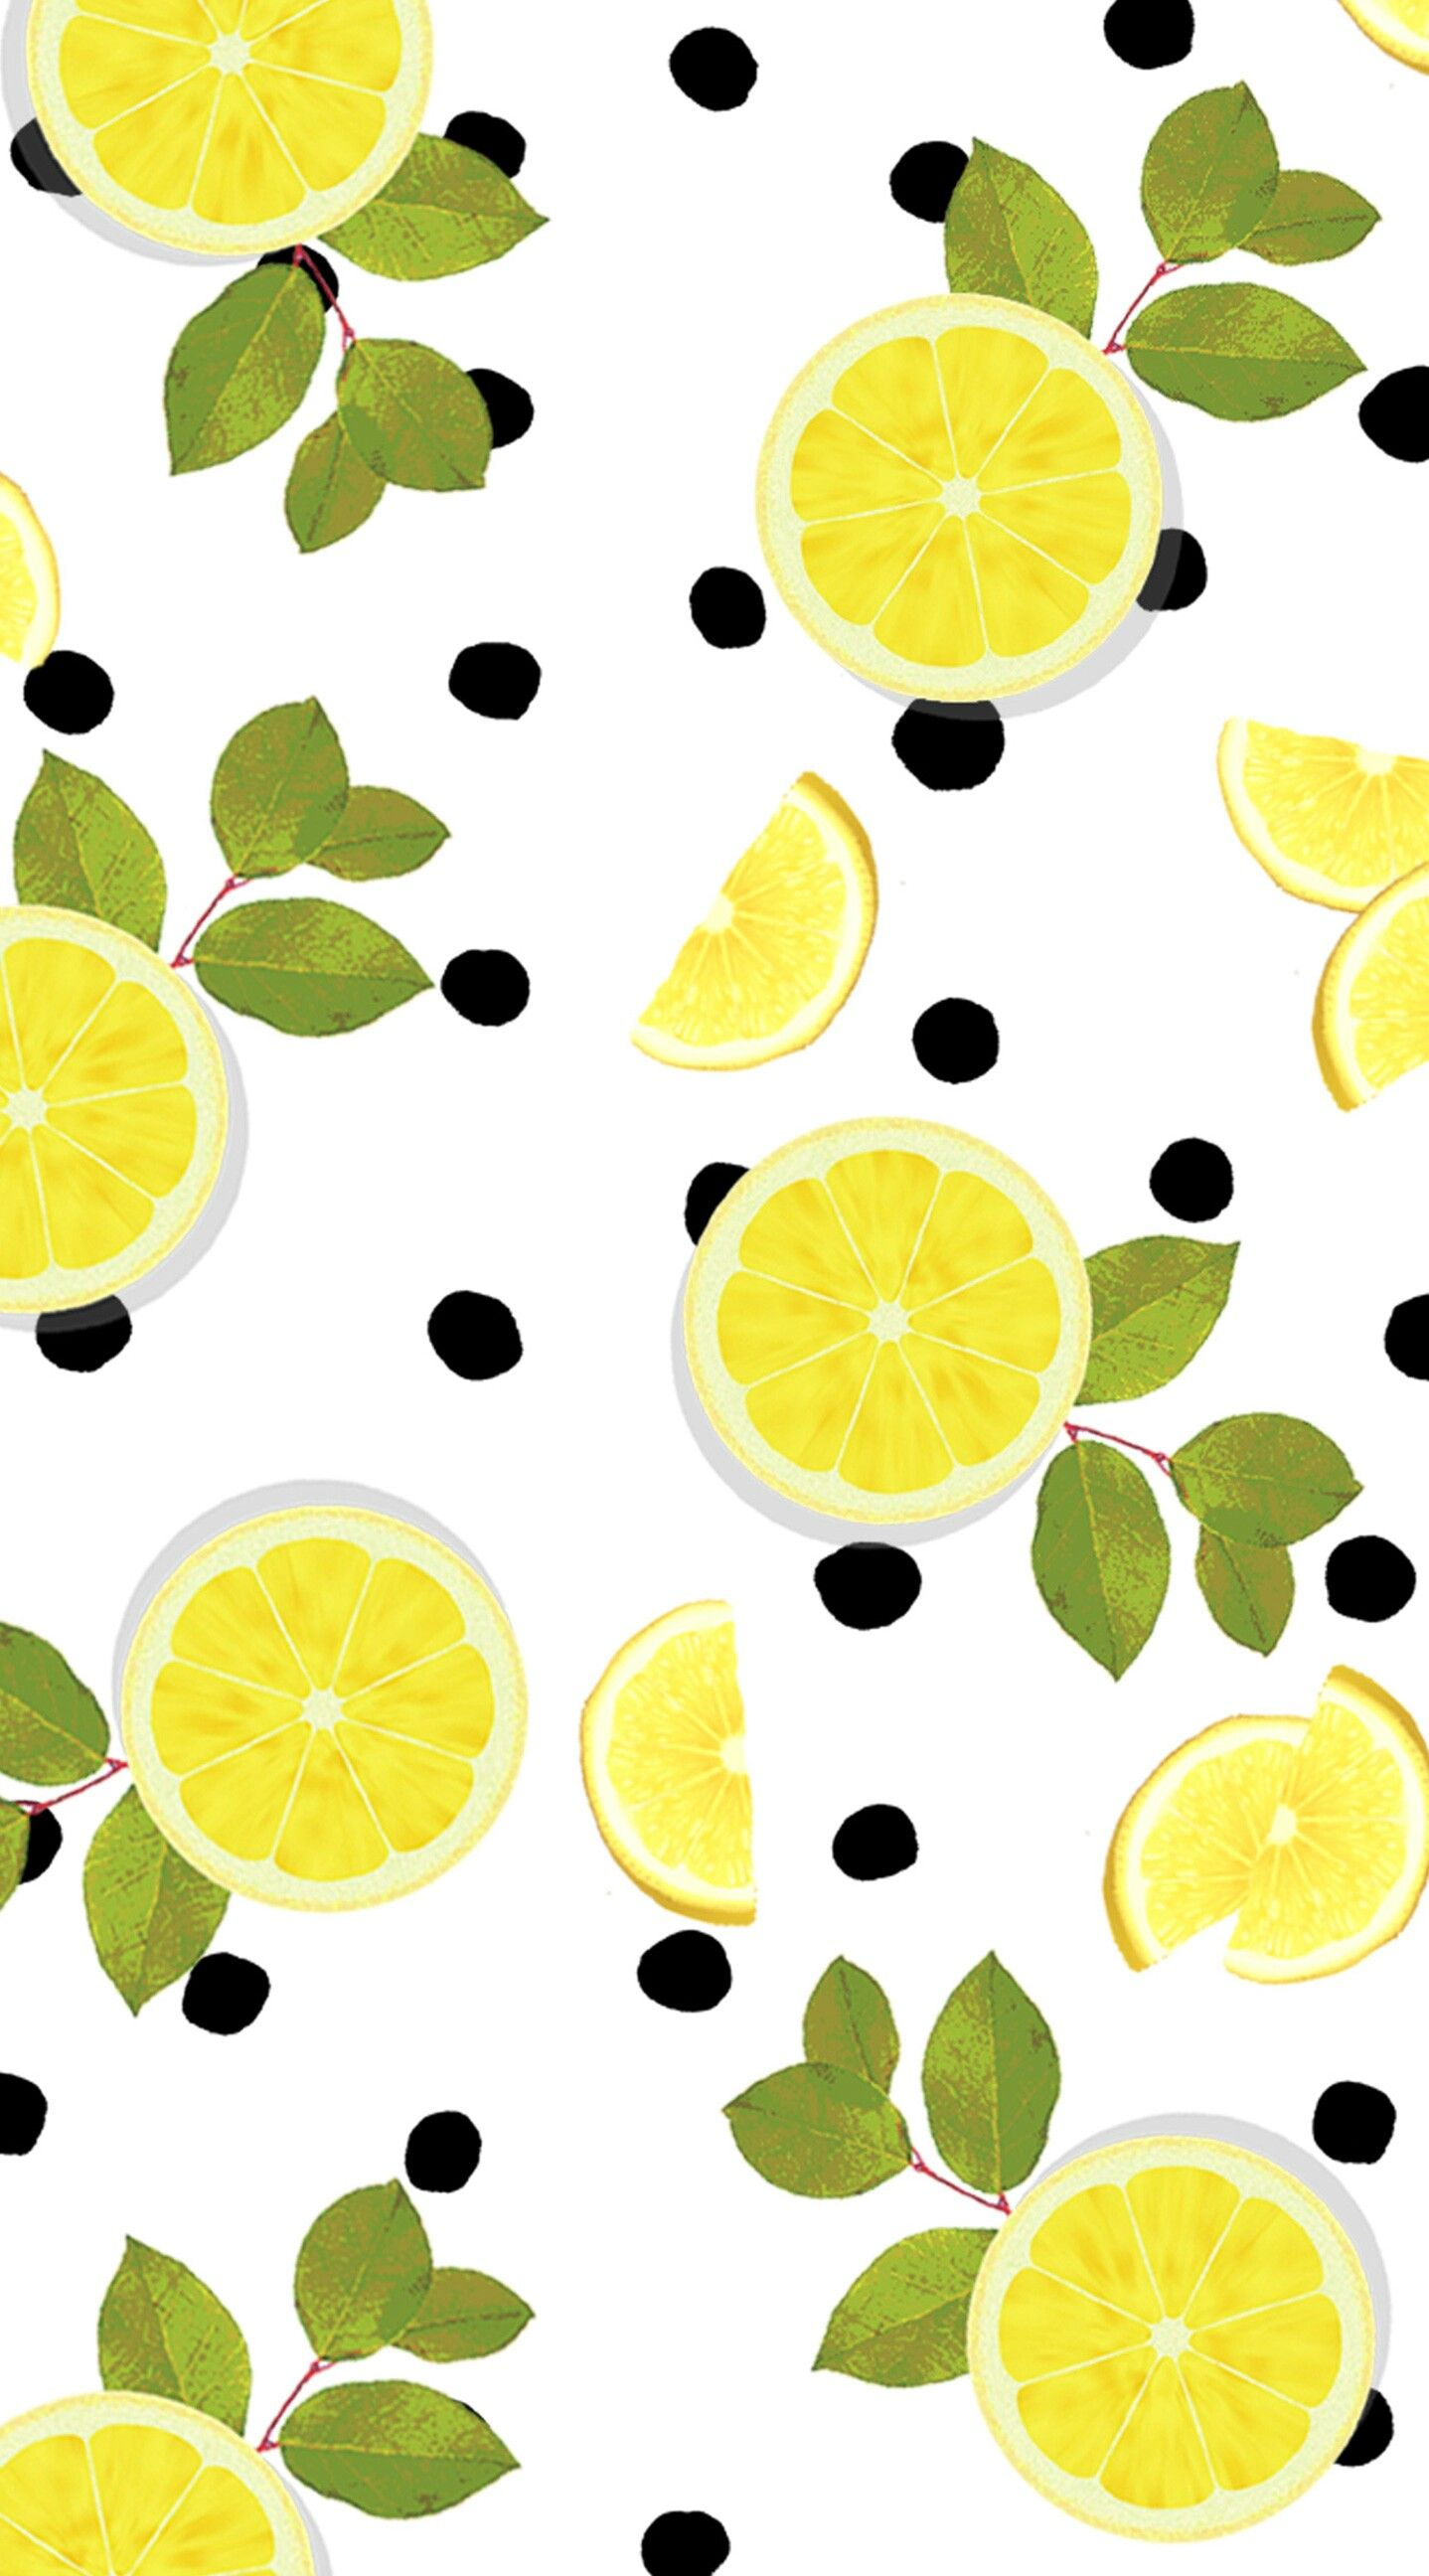 Pin by pang wi on cute Fruit wallpaper, Bright wallpaper